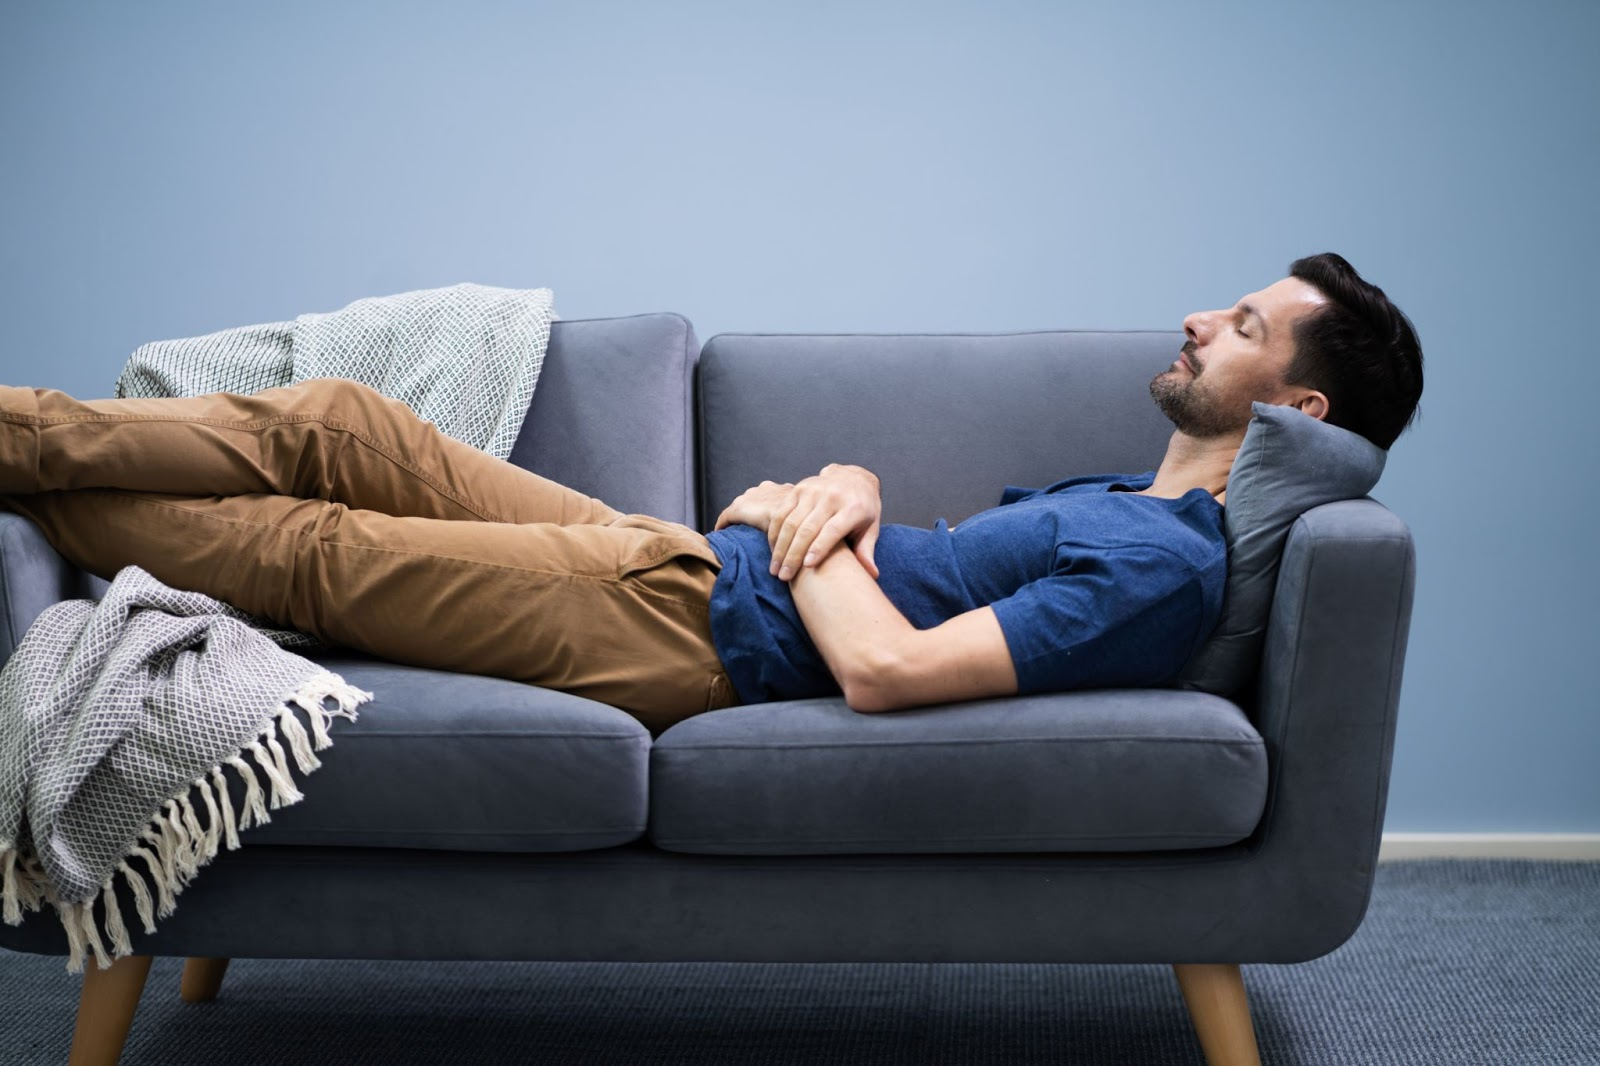 Sleeping during the day: A man naps on a couch